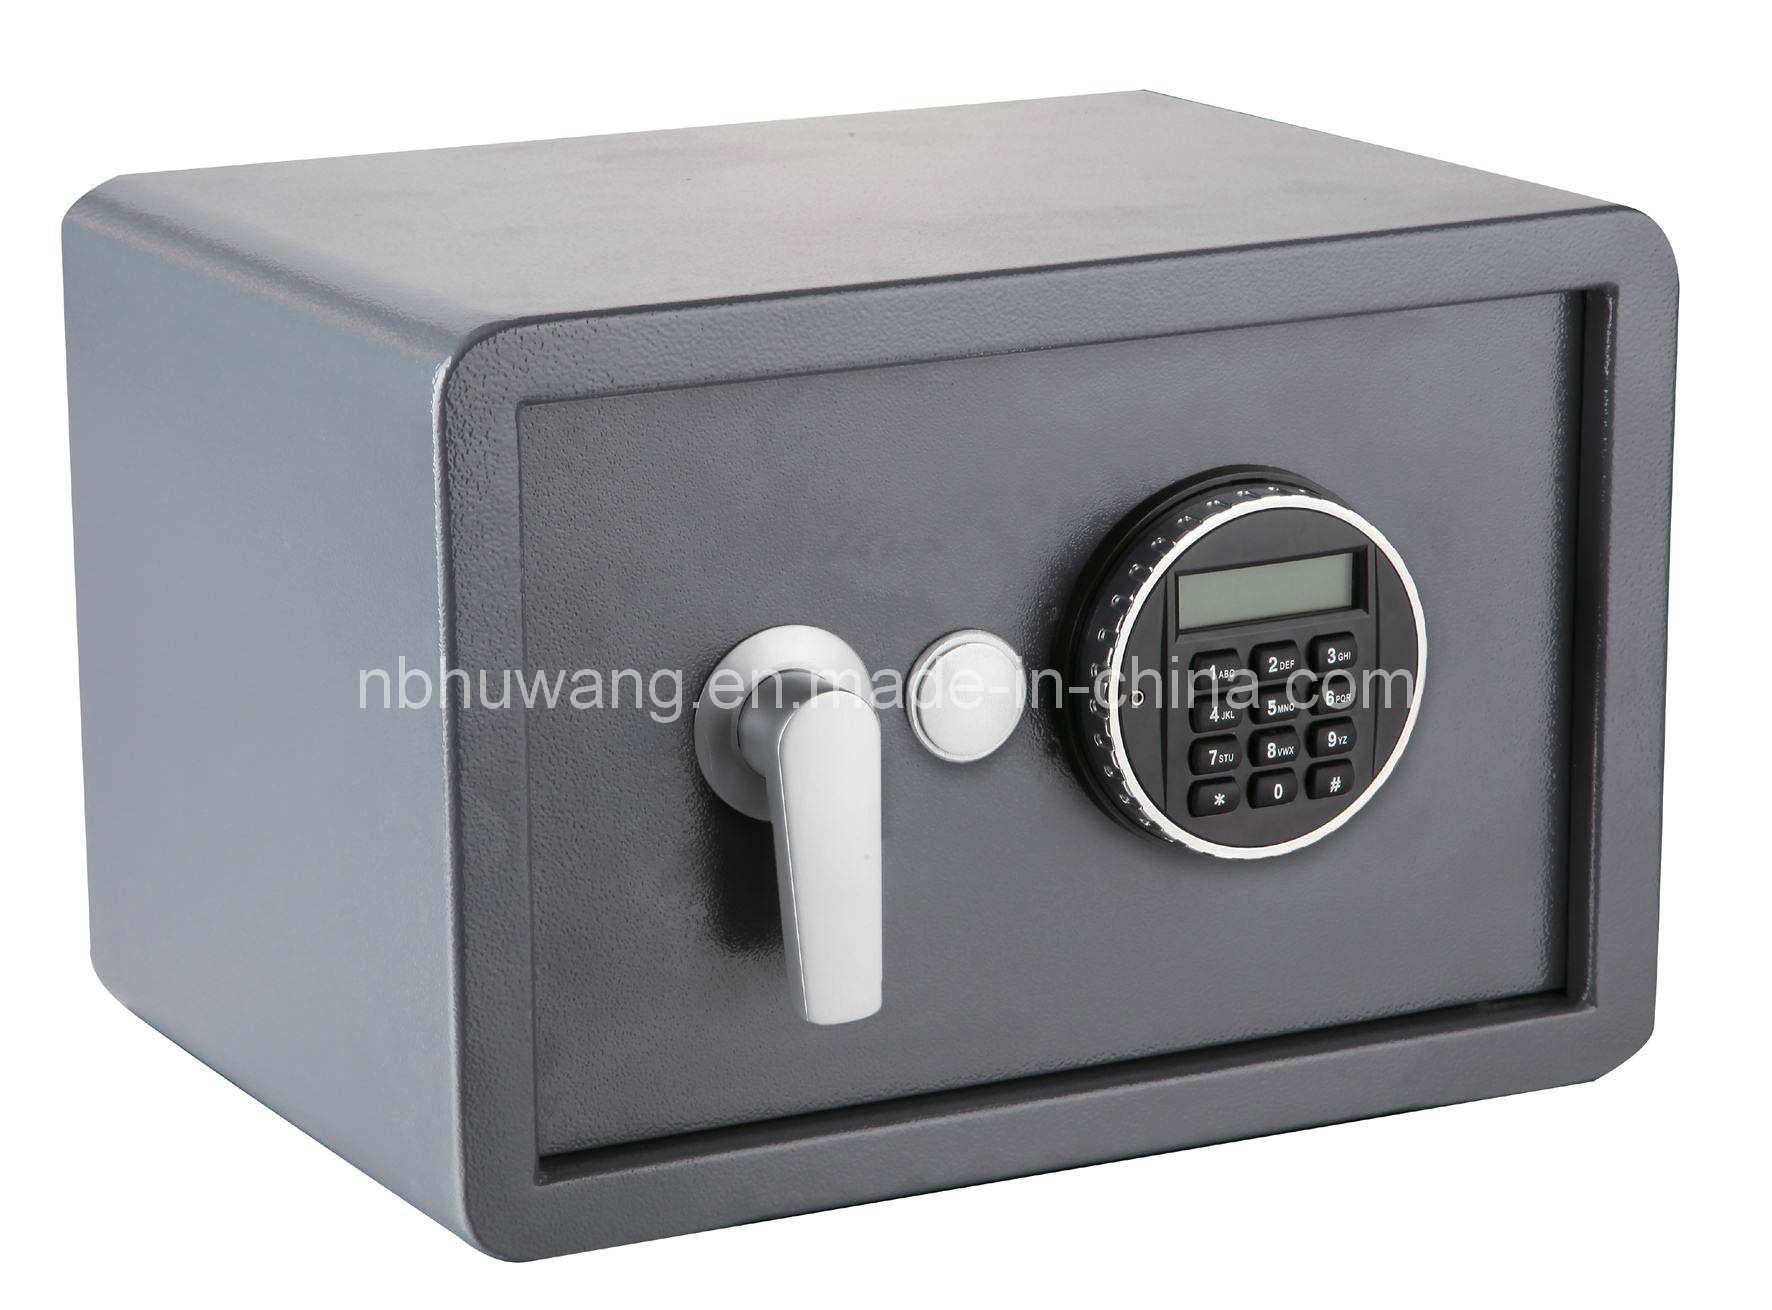 Steel Security Safe Box with Electronic Lock